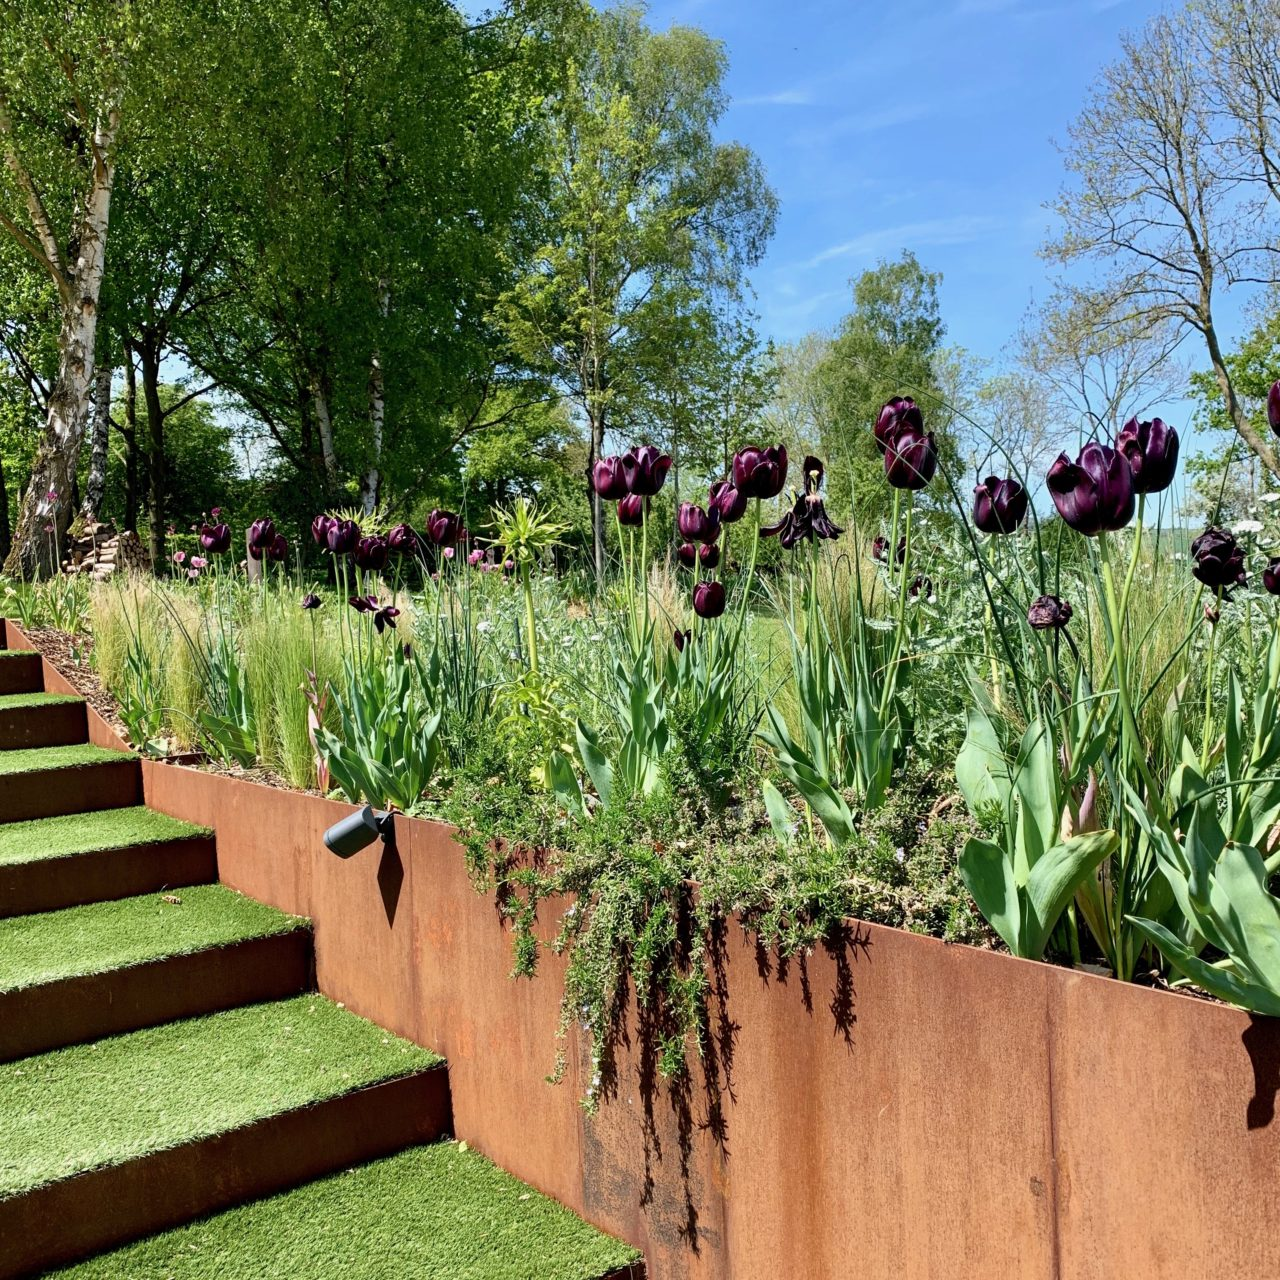 Corten steel supporting wall planted with Queen of the night tulips - gorgeous